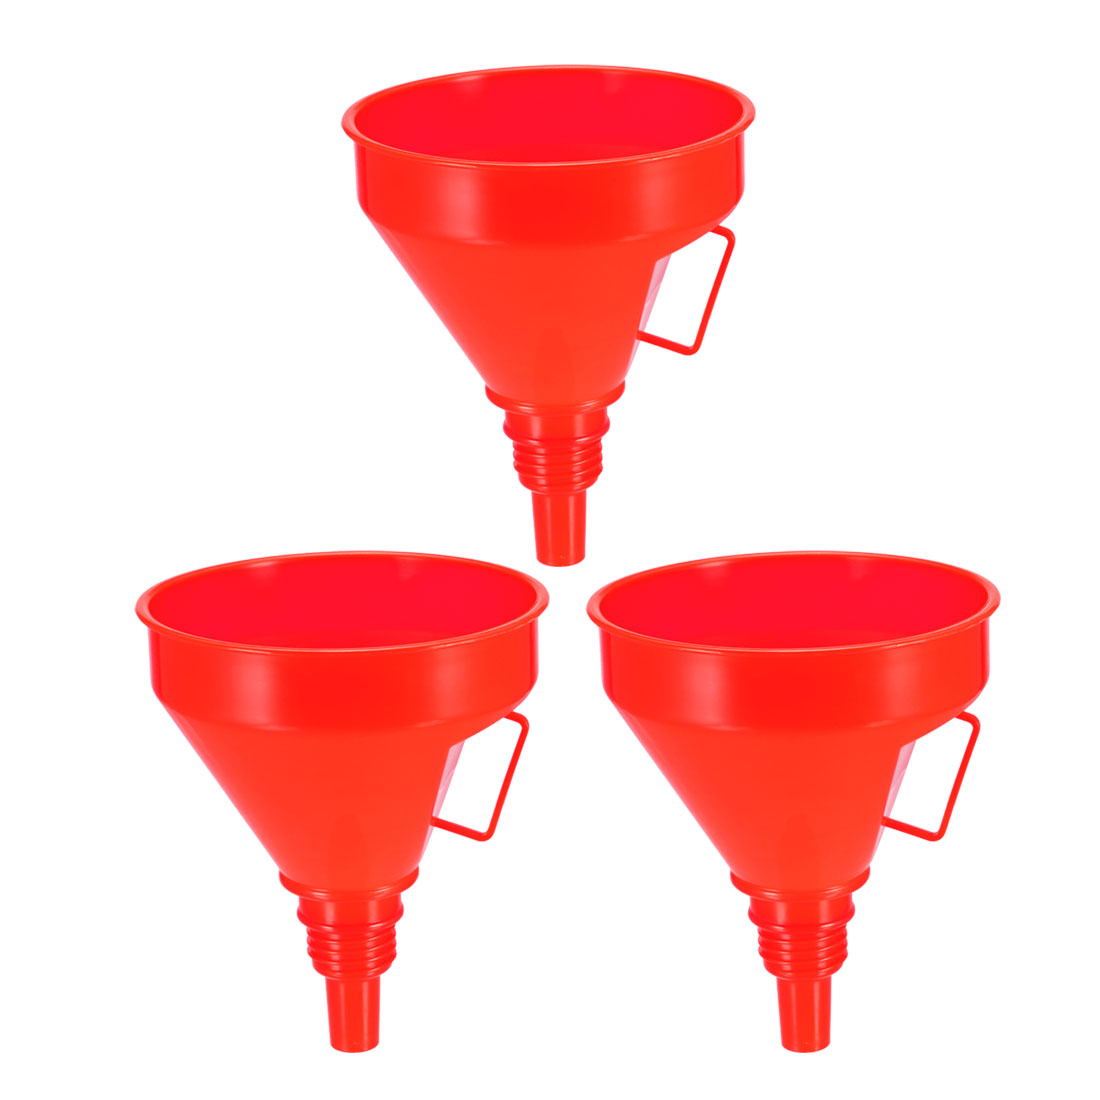 "Filter Funnel 6"" Plastic Red Feul Funnel for Petrol Engine Oil Water Fuel 3pcs"